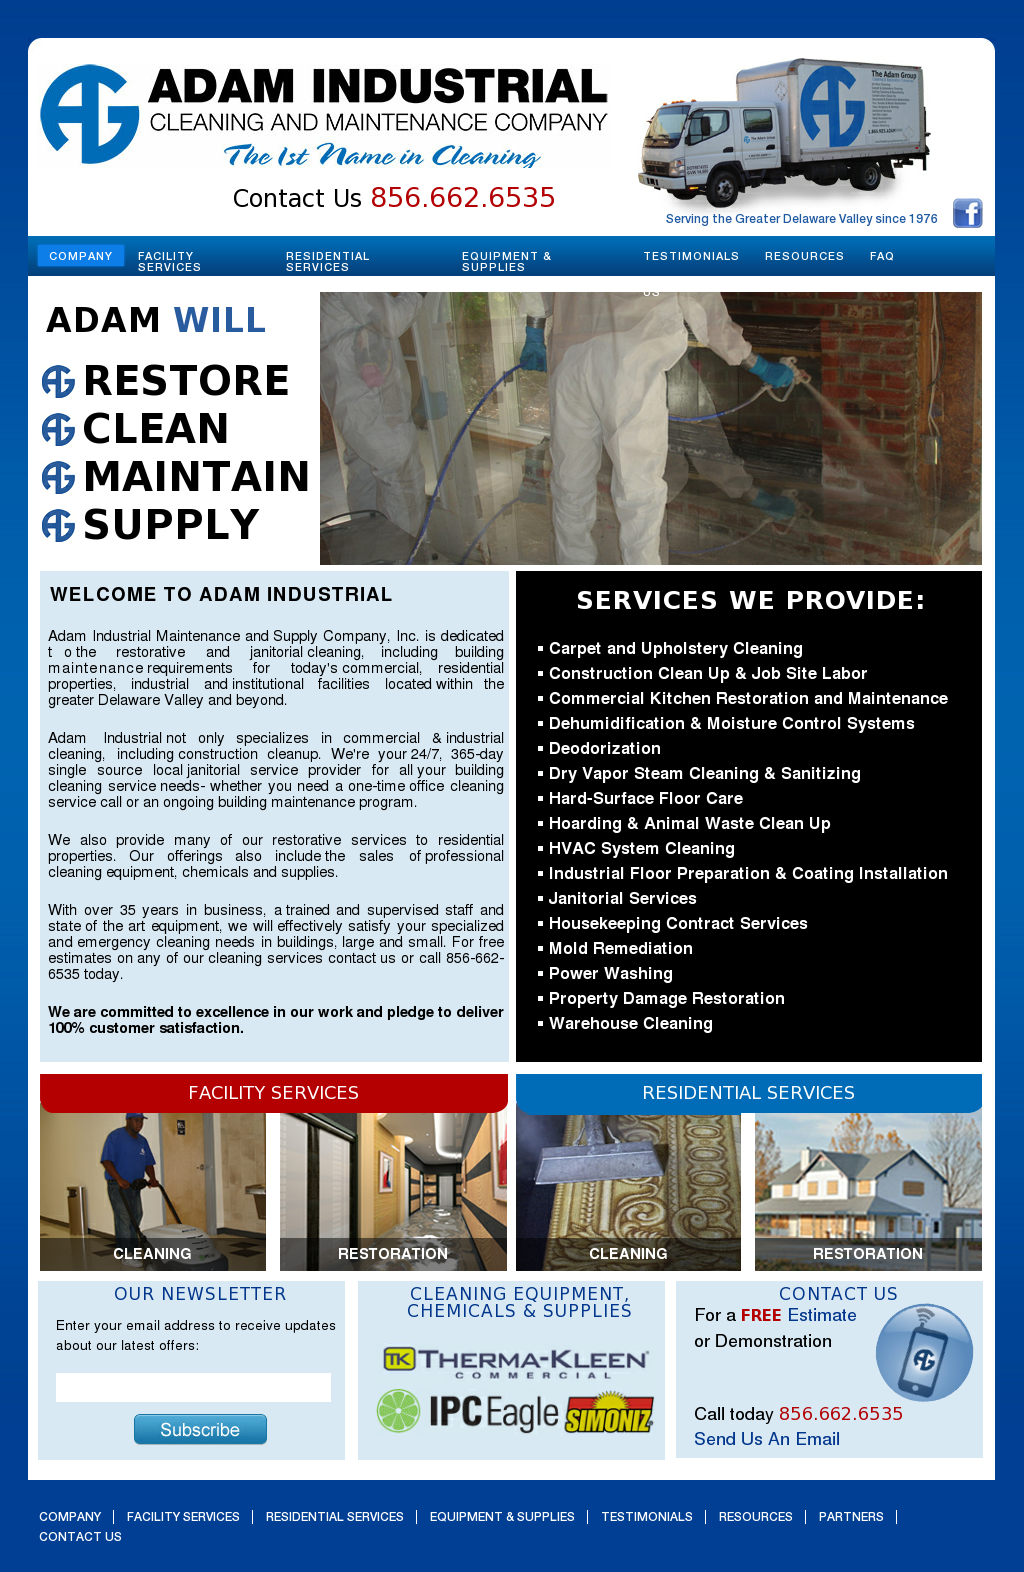 Adam Industrial Mntnc & Supl Competitors, Revenue and Employees ...